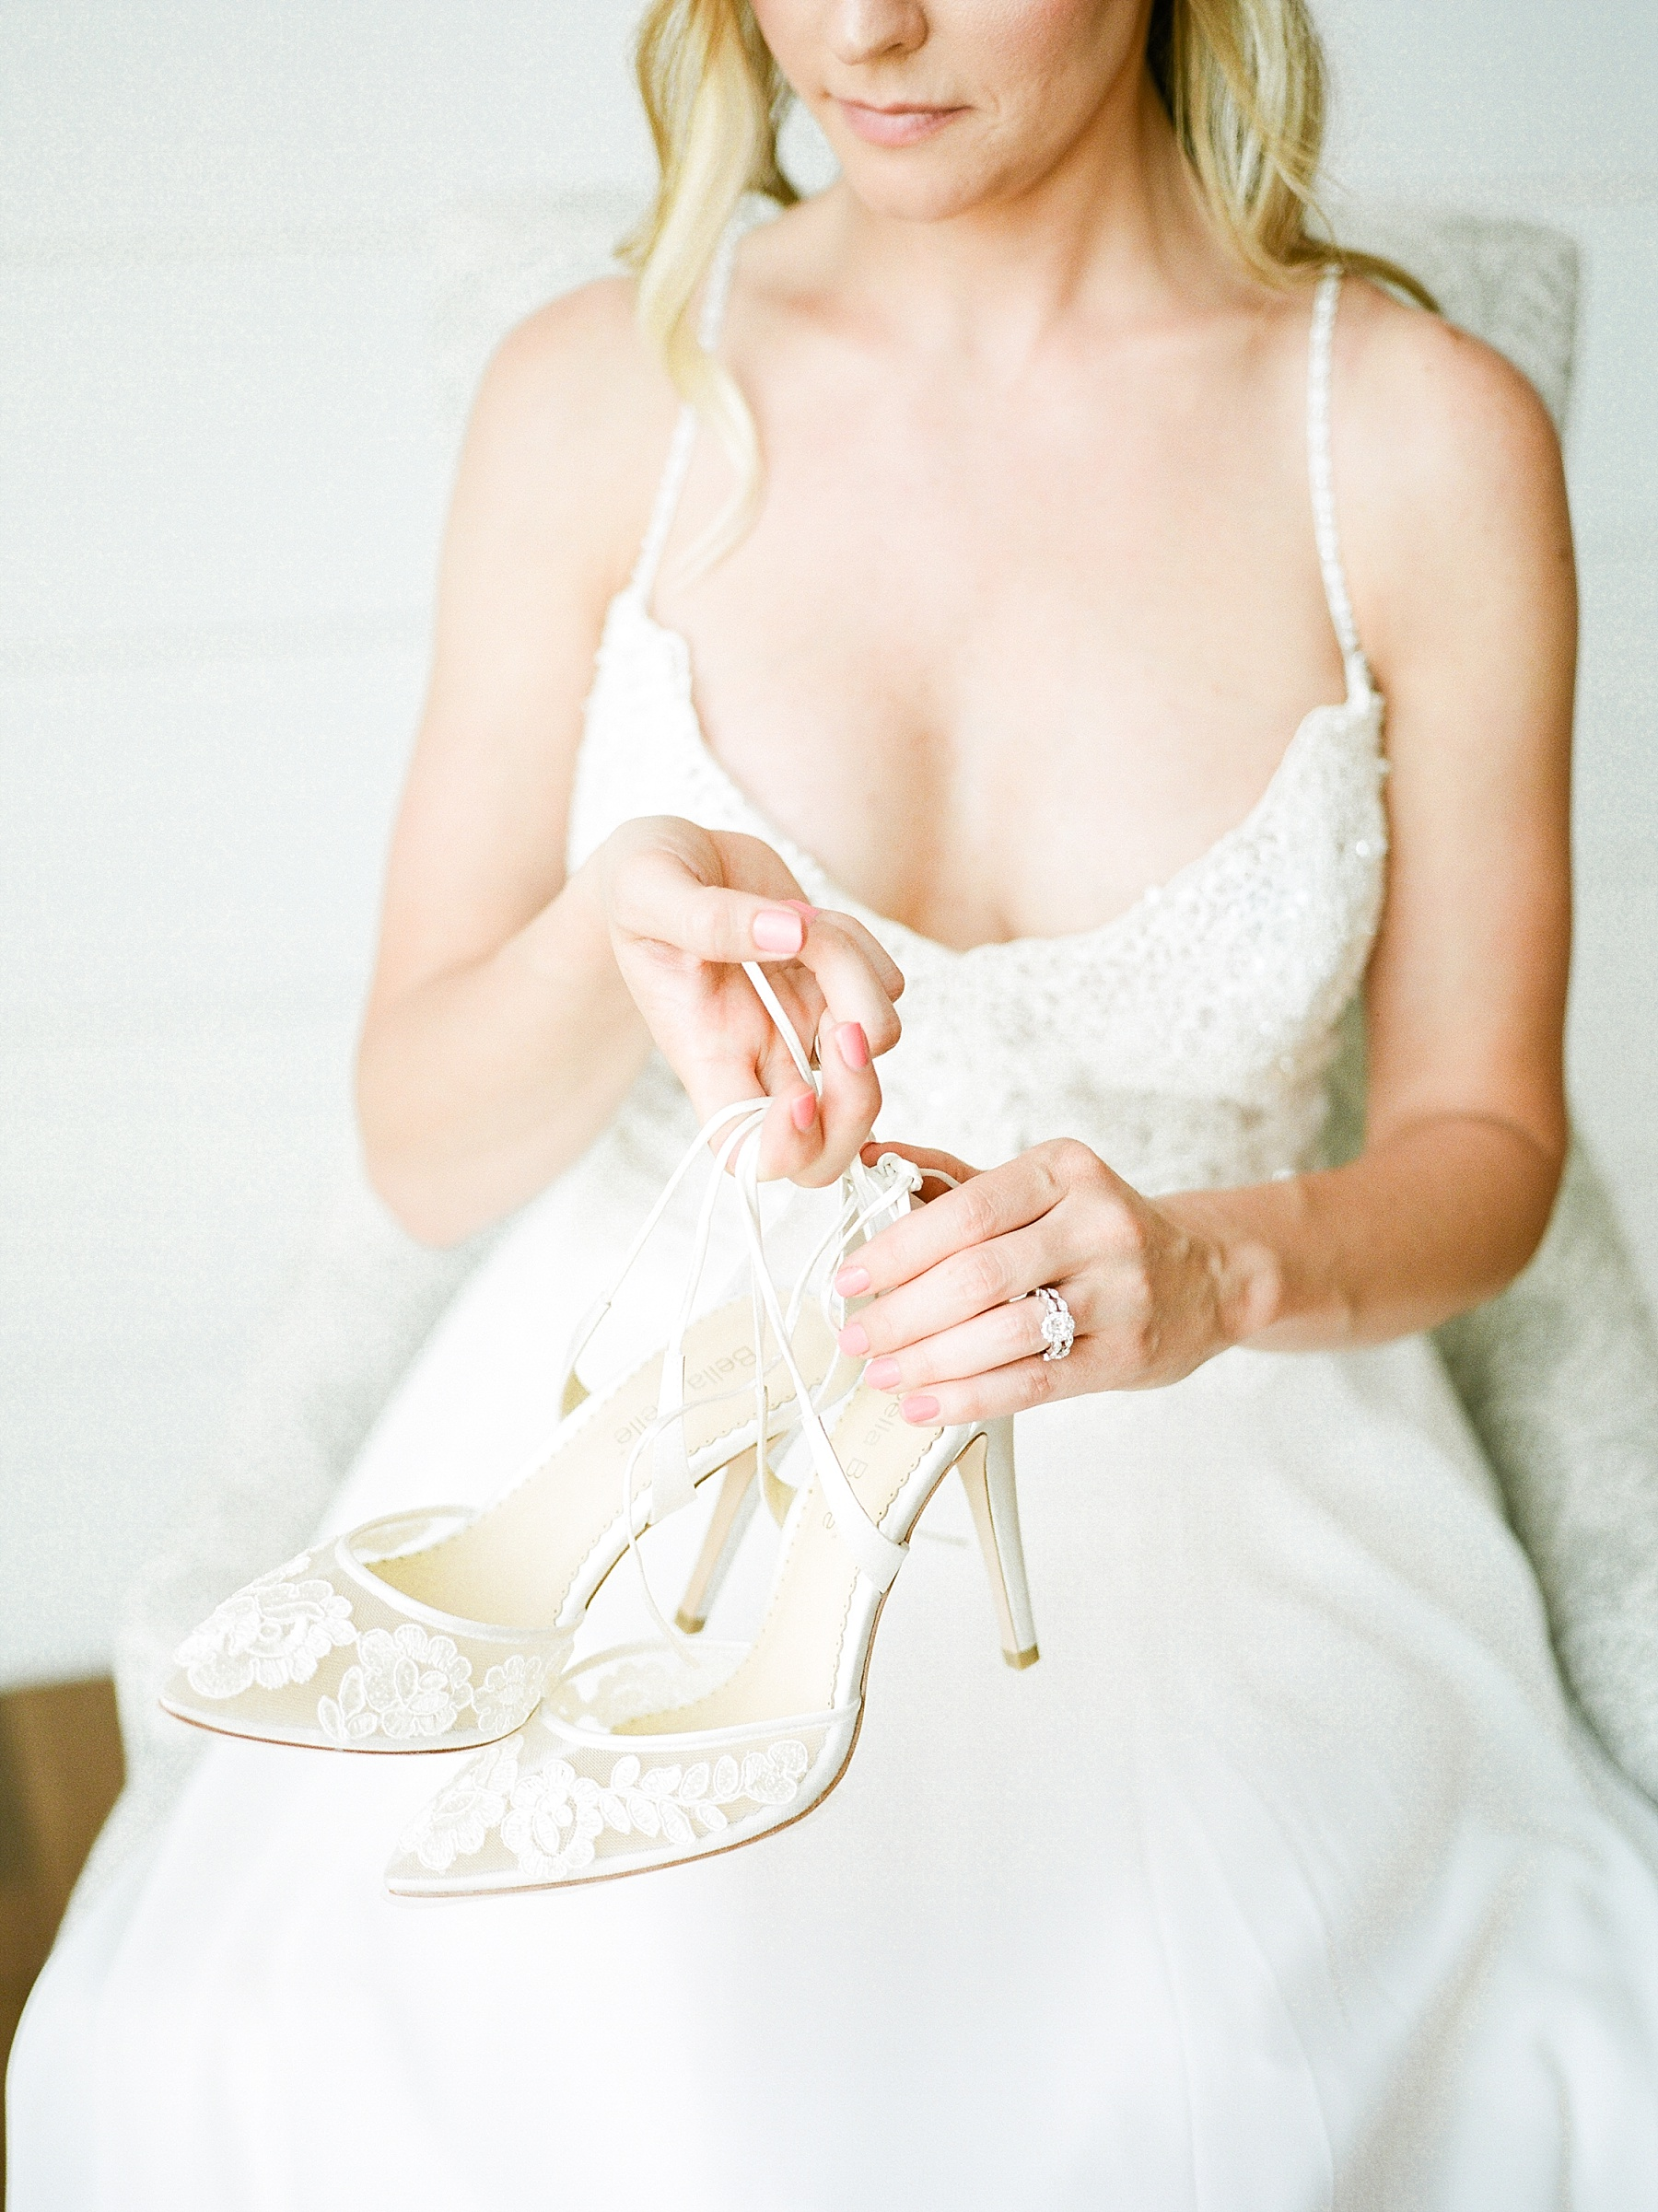 Textural Organic Wedding in All White Venue by Kelsi Kliethermes Wedding Photographer - Missouri, Midwest, and Destinations_0024.jpg